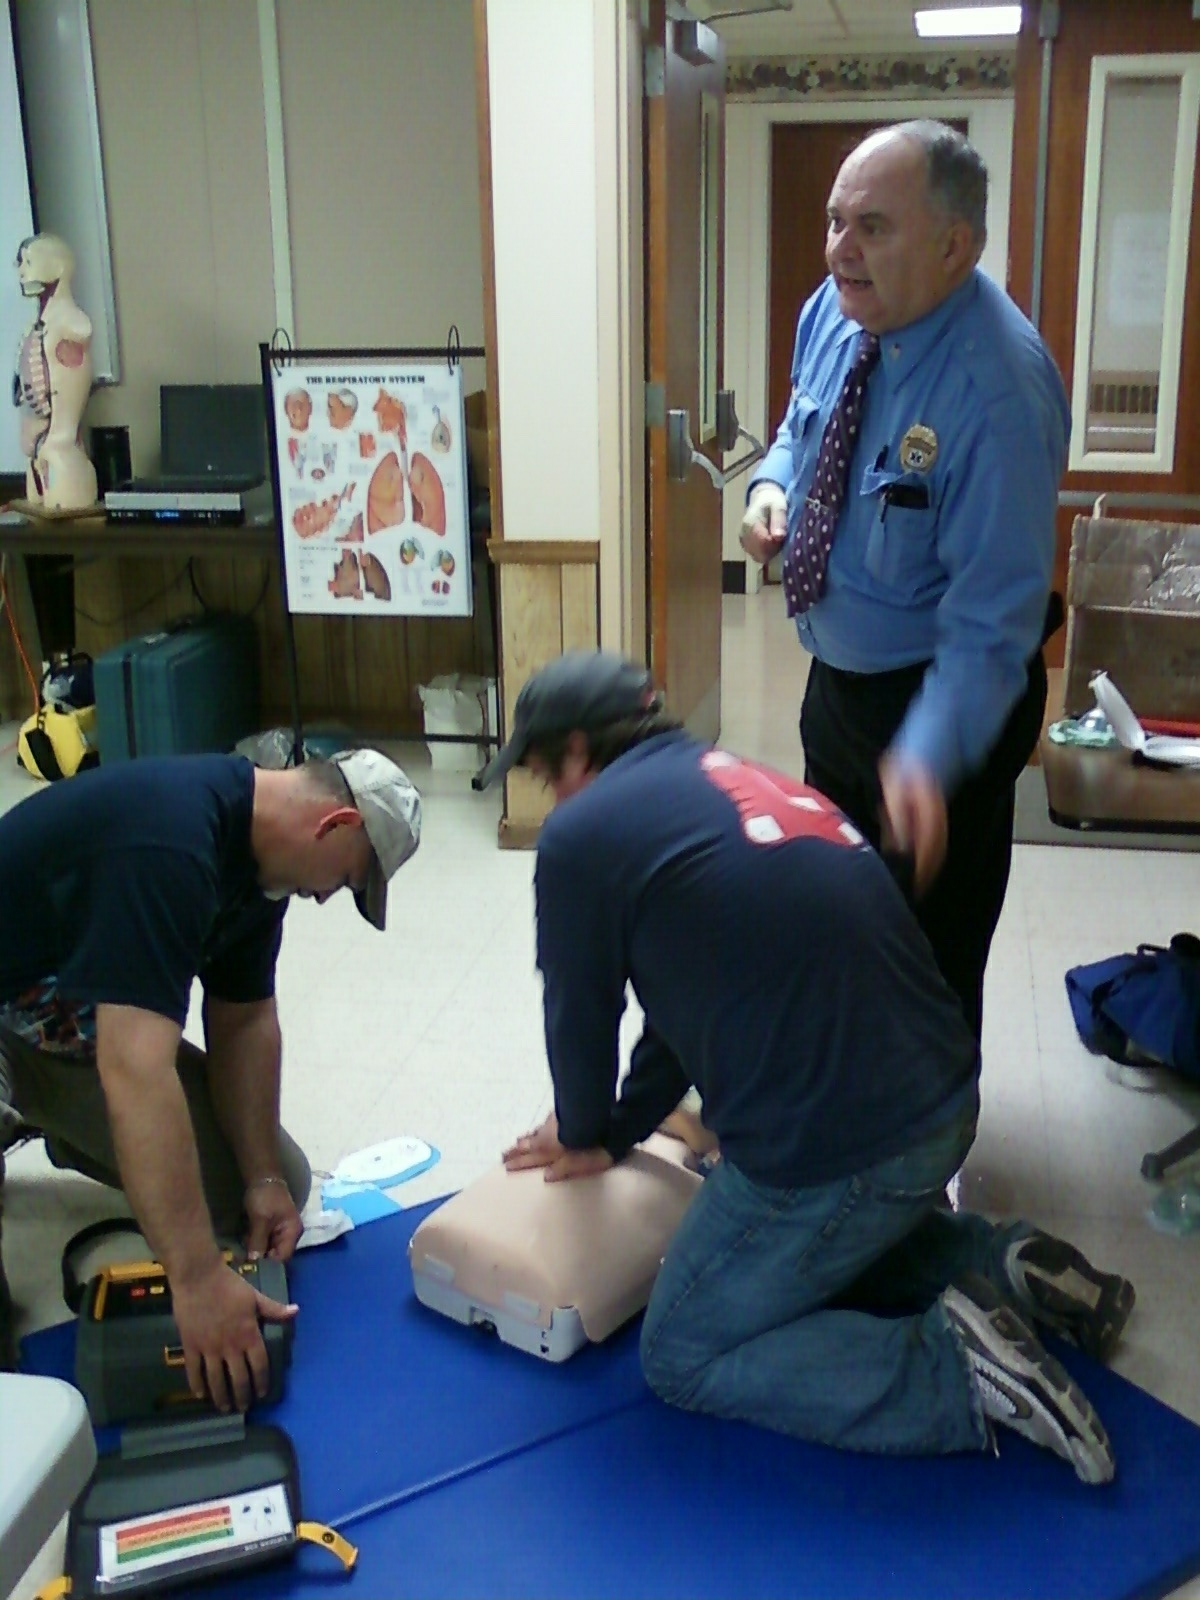 Fred instructing Leon and Jeremiah during AED practice.